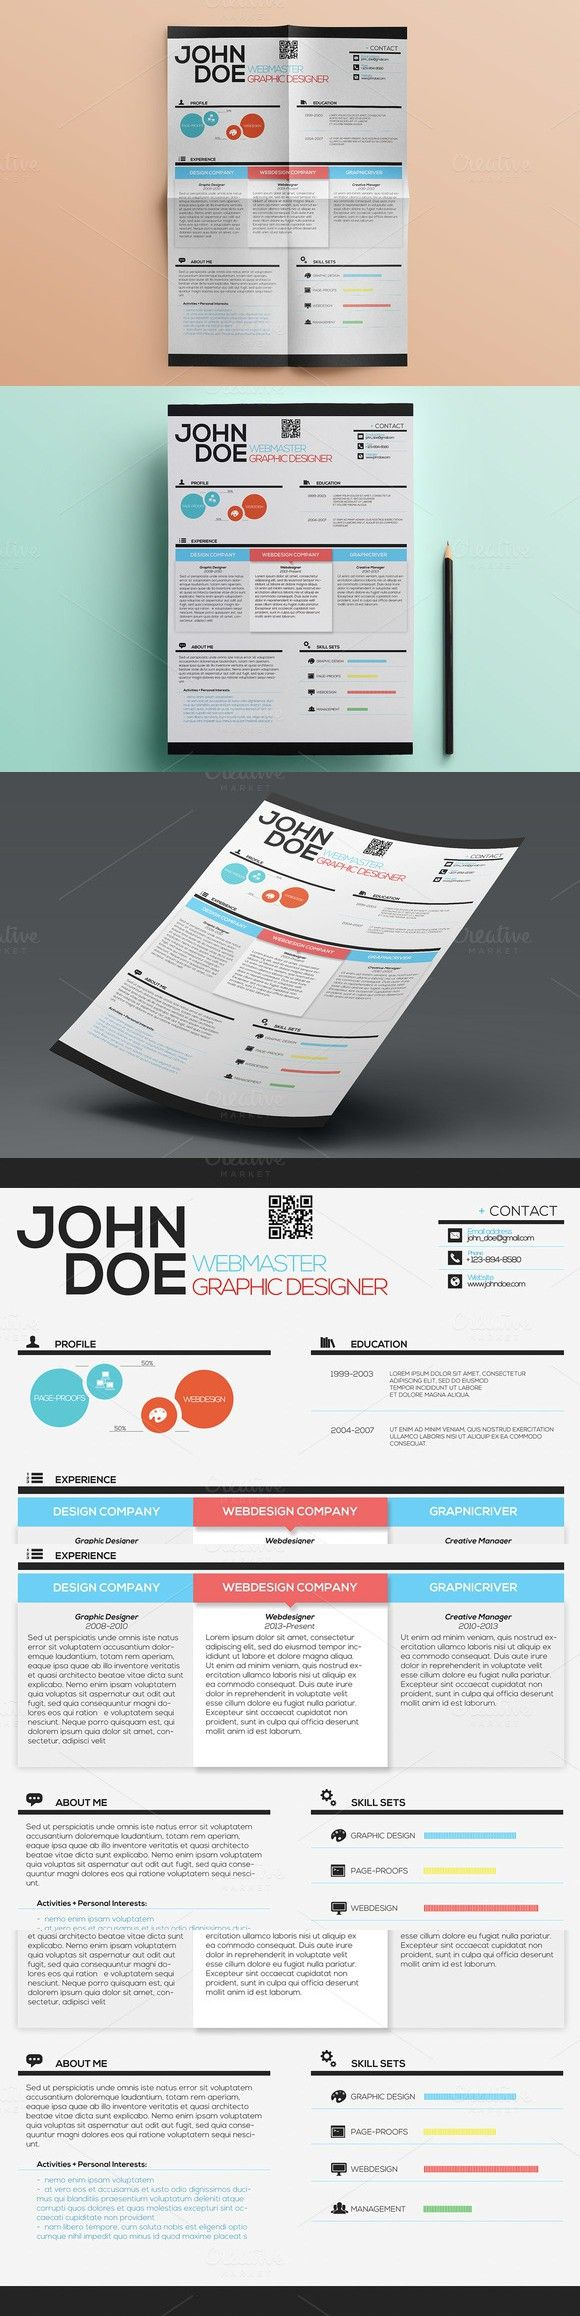 Simple Creative Resume. Stationery Templates